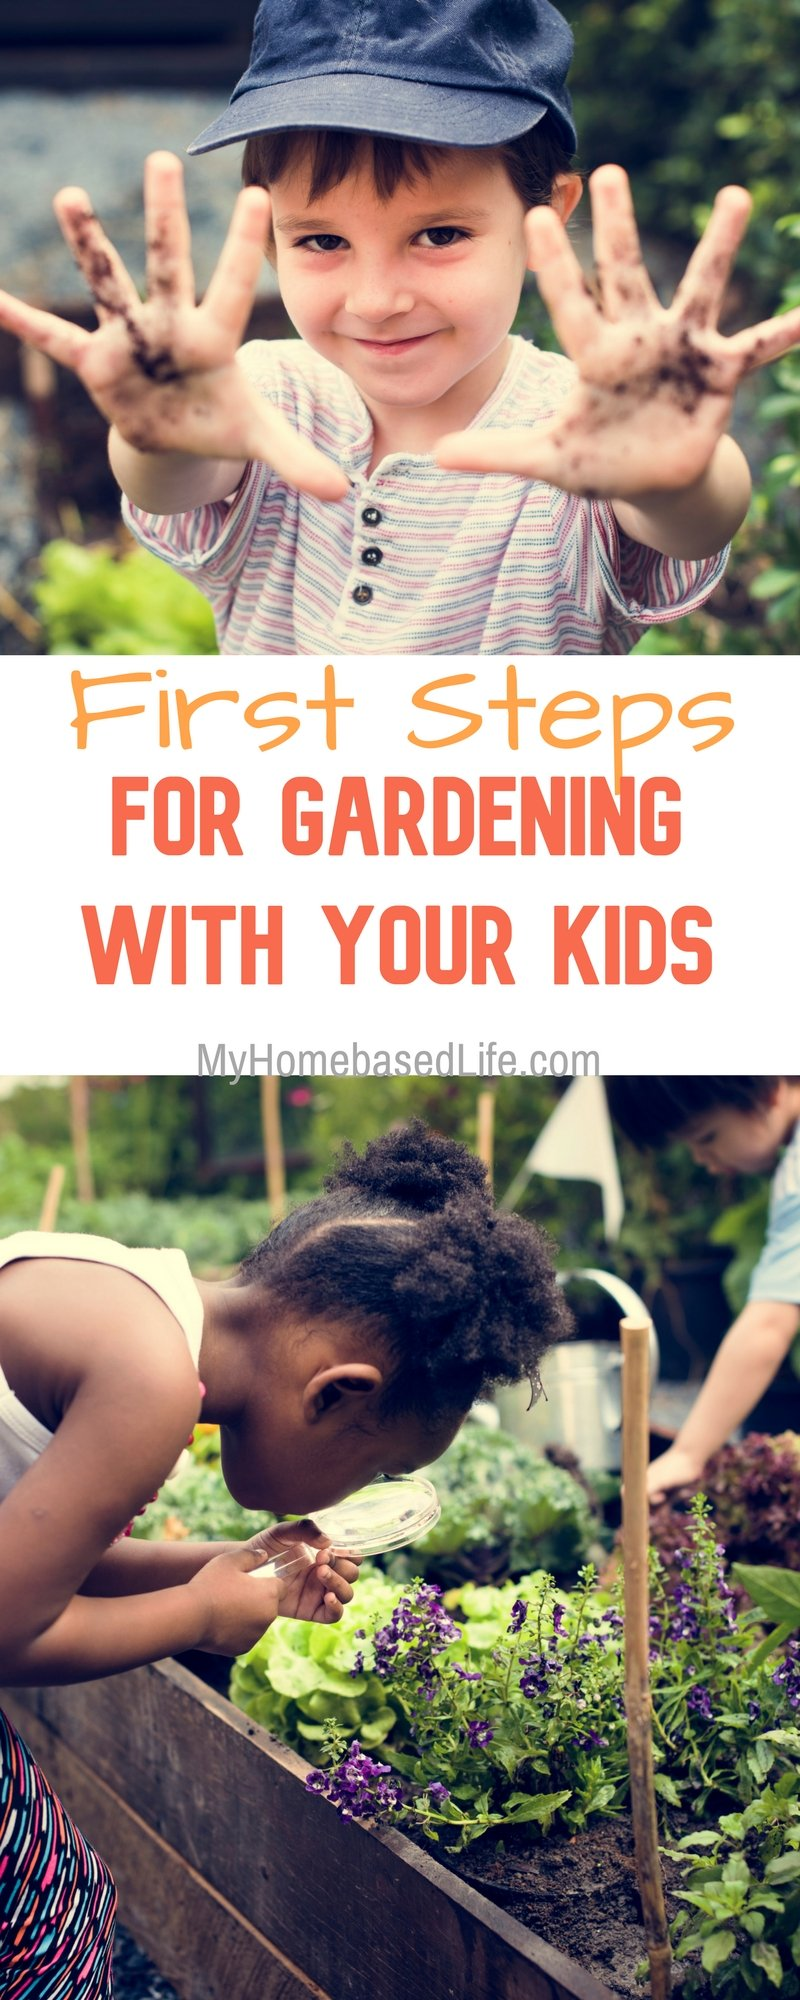 First Steps For Gardening With Your Kids | Gardening | Family Time | #gardening | Kids Activities | Family Activities | Outdoor Activity for the Family |